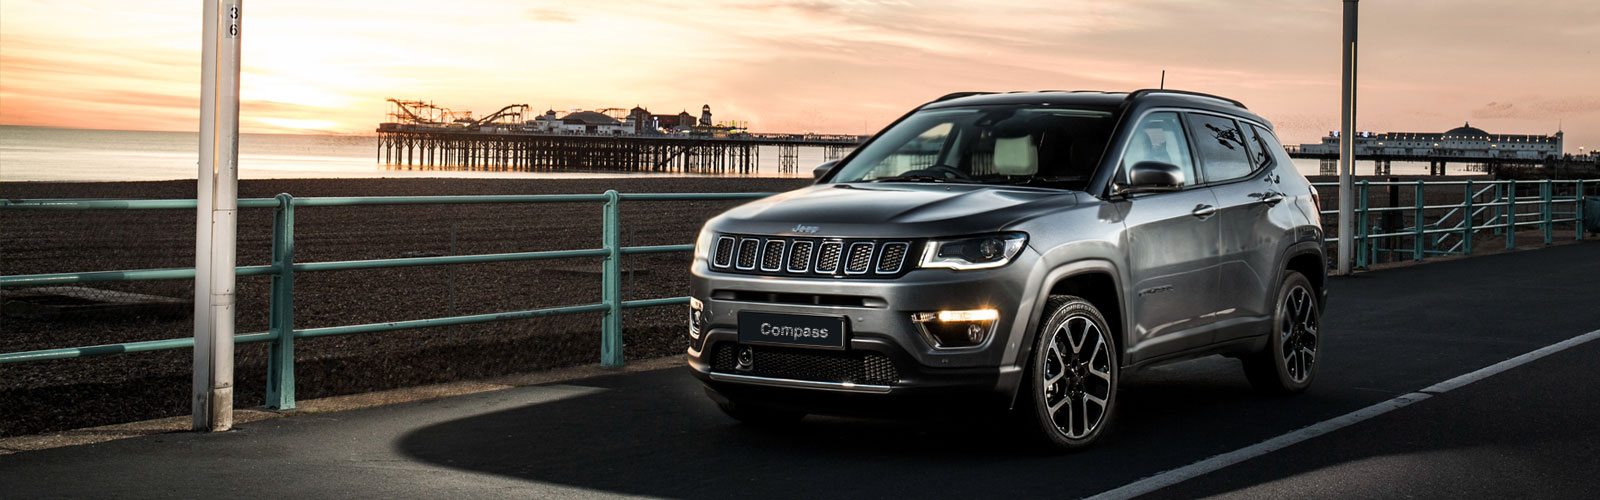 PPS Jeep - Compass Silver on Road